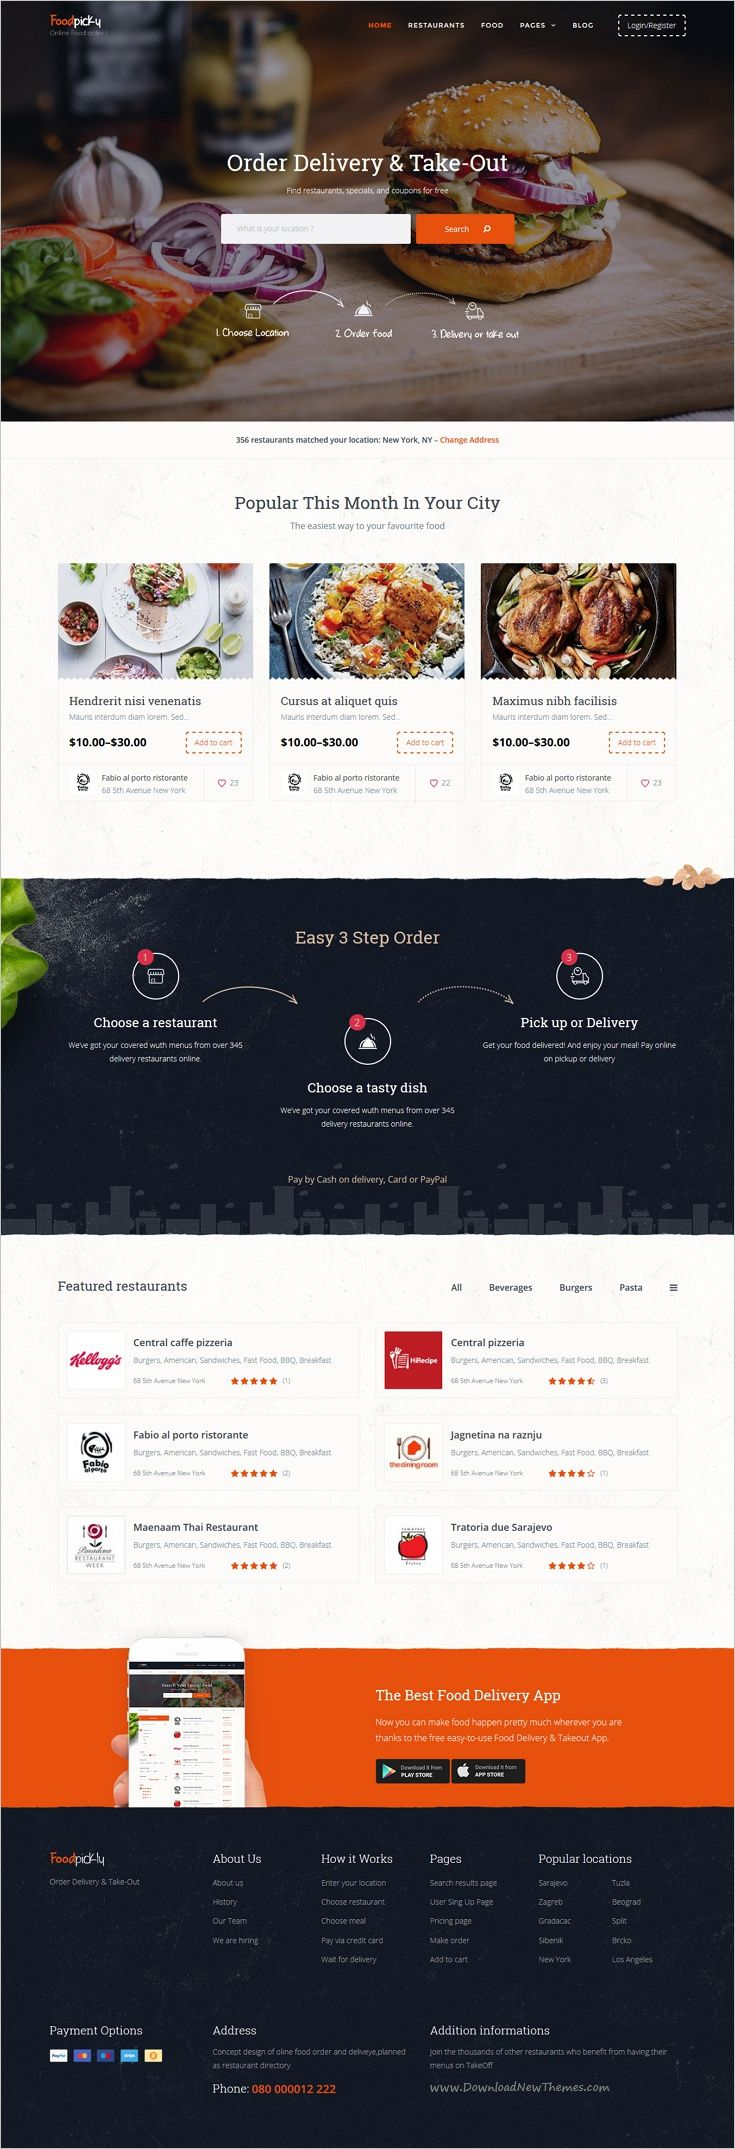 FoodPicky is a awesome #WordPress Template best suitable for #webdesign #food ordering & delivery system like FoodPanda, JustEat, Zomato, Grubhub, Eat24Hours, delivery.com, DoorDash website download now➩ https://themeforest.net/item/food-delivery-restaurant-directory-wordpress-theme-foodpicky/17966079?ref=Datasata